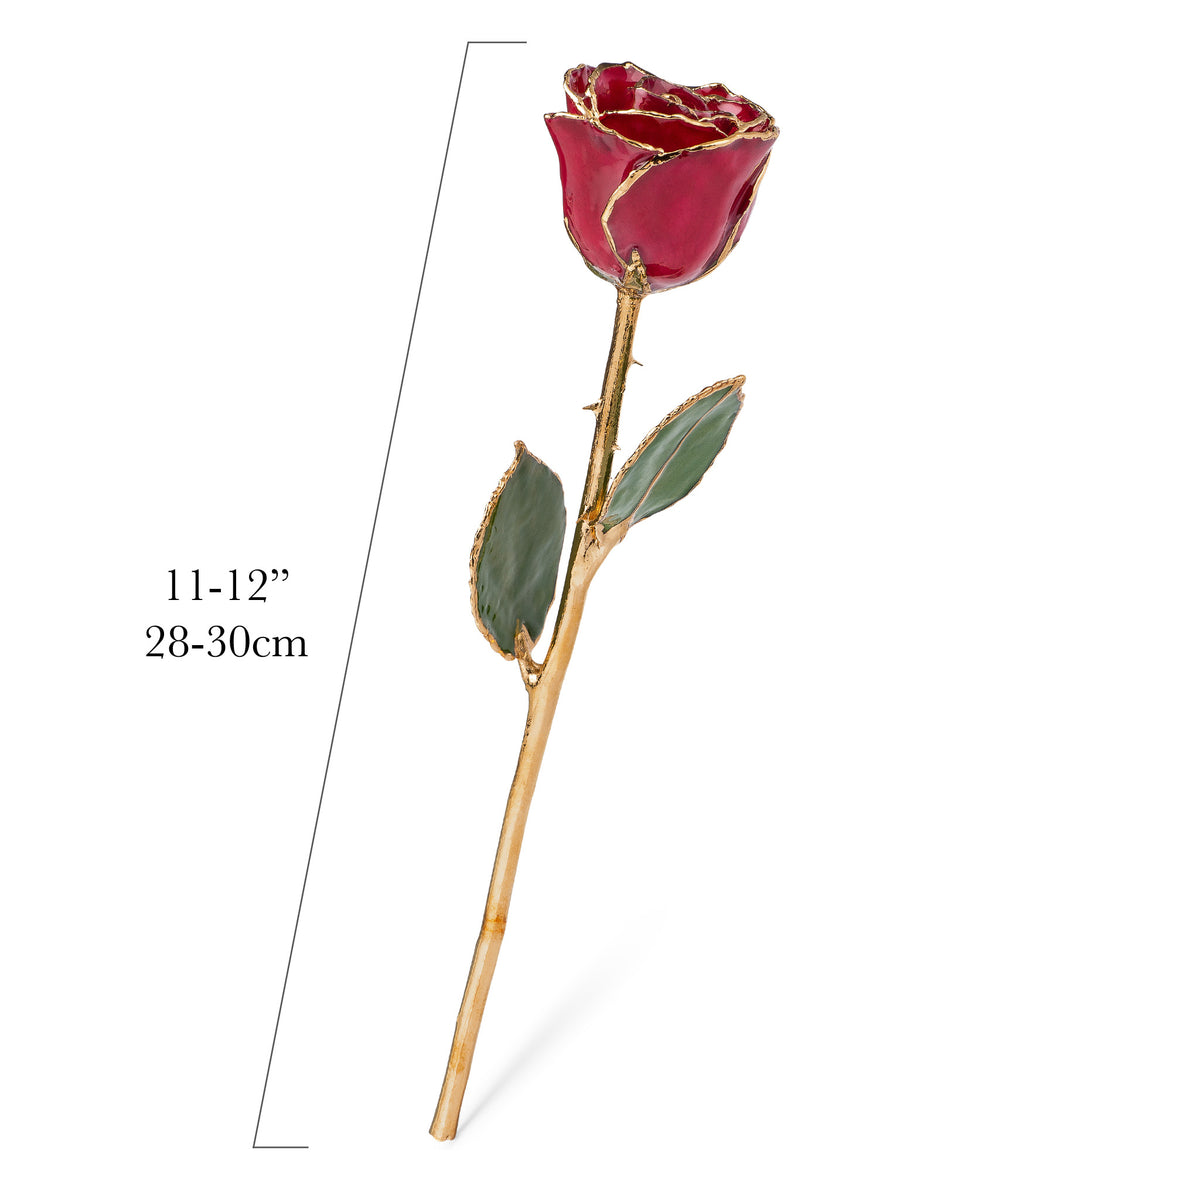 24K Gold Trimmed Forever Rose with Deep Red Burgundy Petals with View of Stem, Leaves, and Rose Petals and Showing Detail of Gold Trim